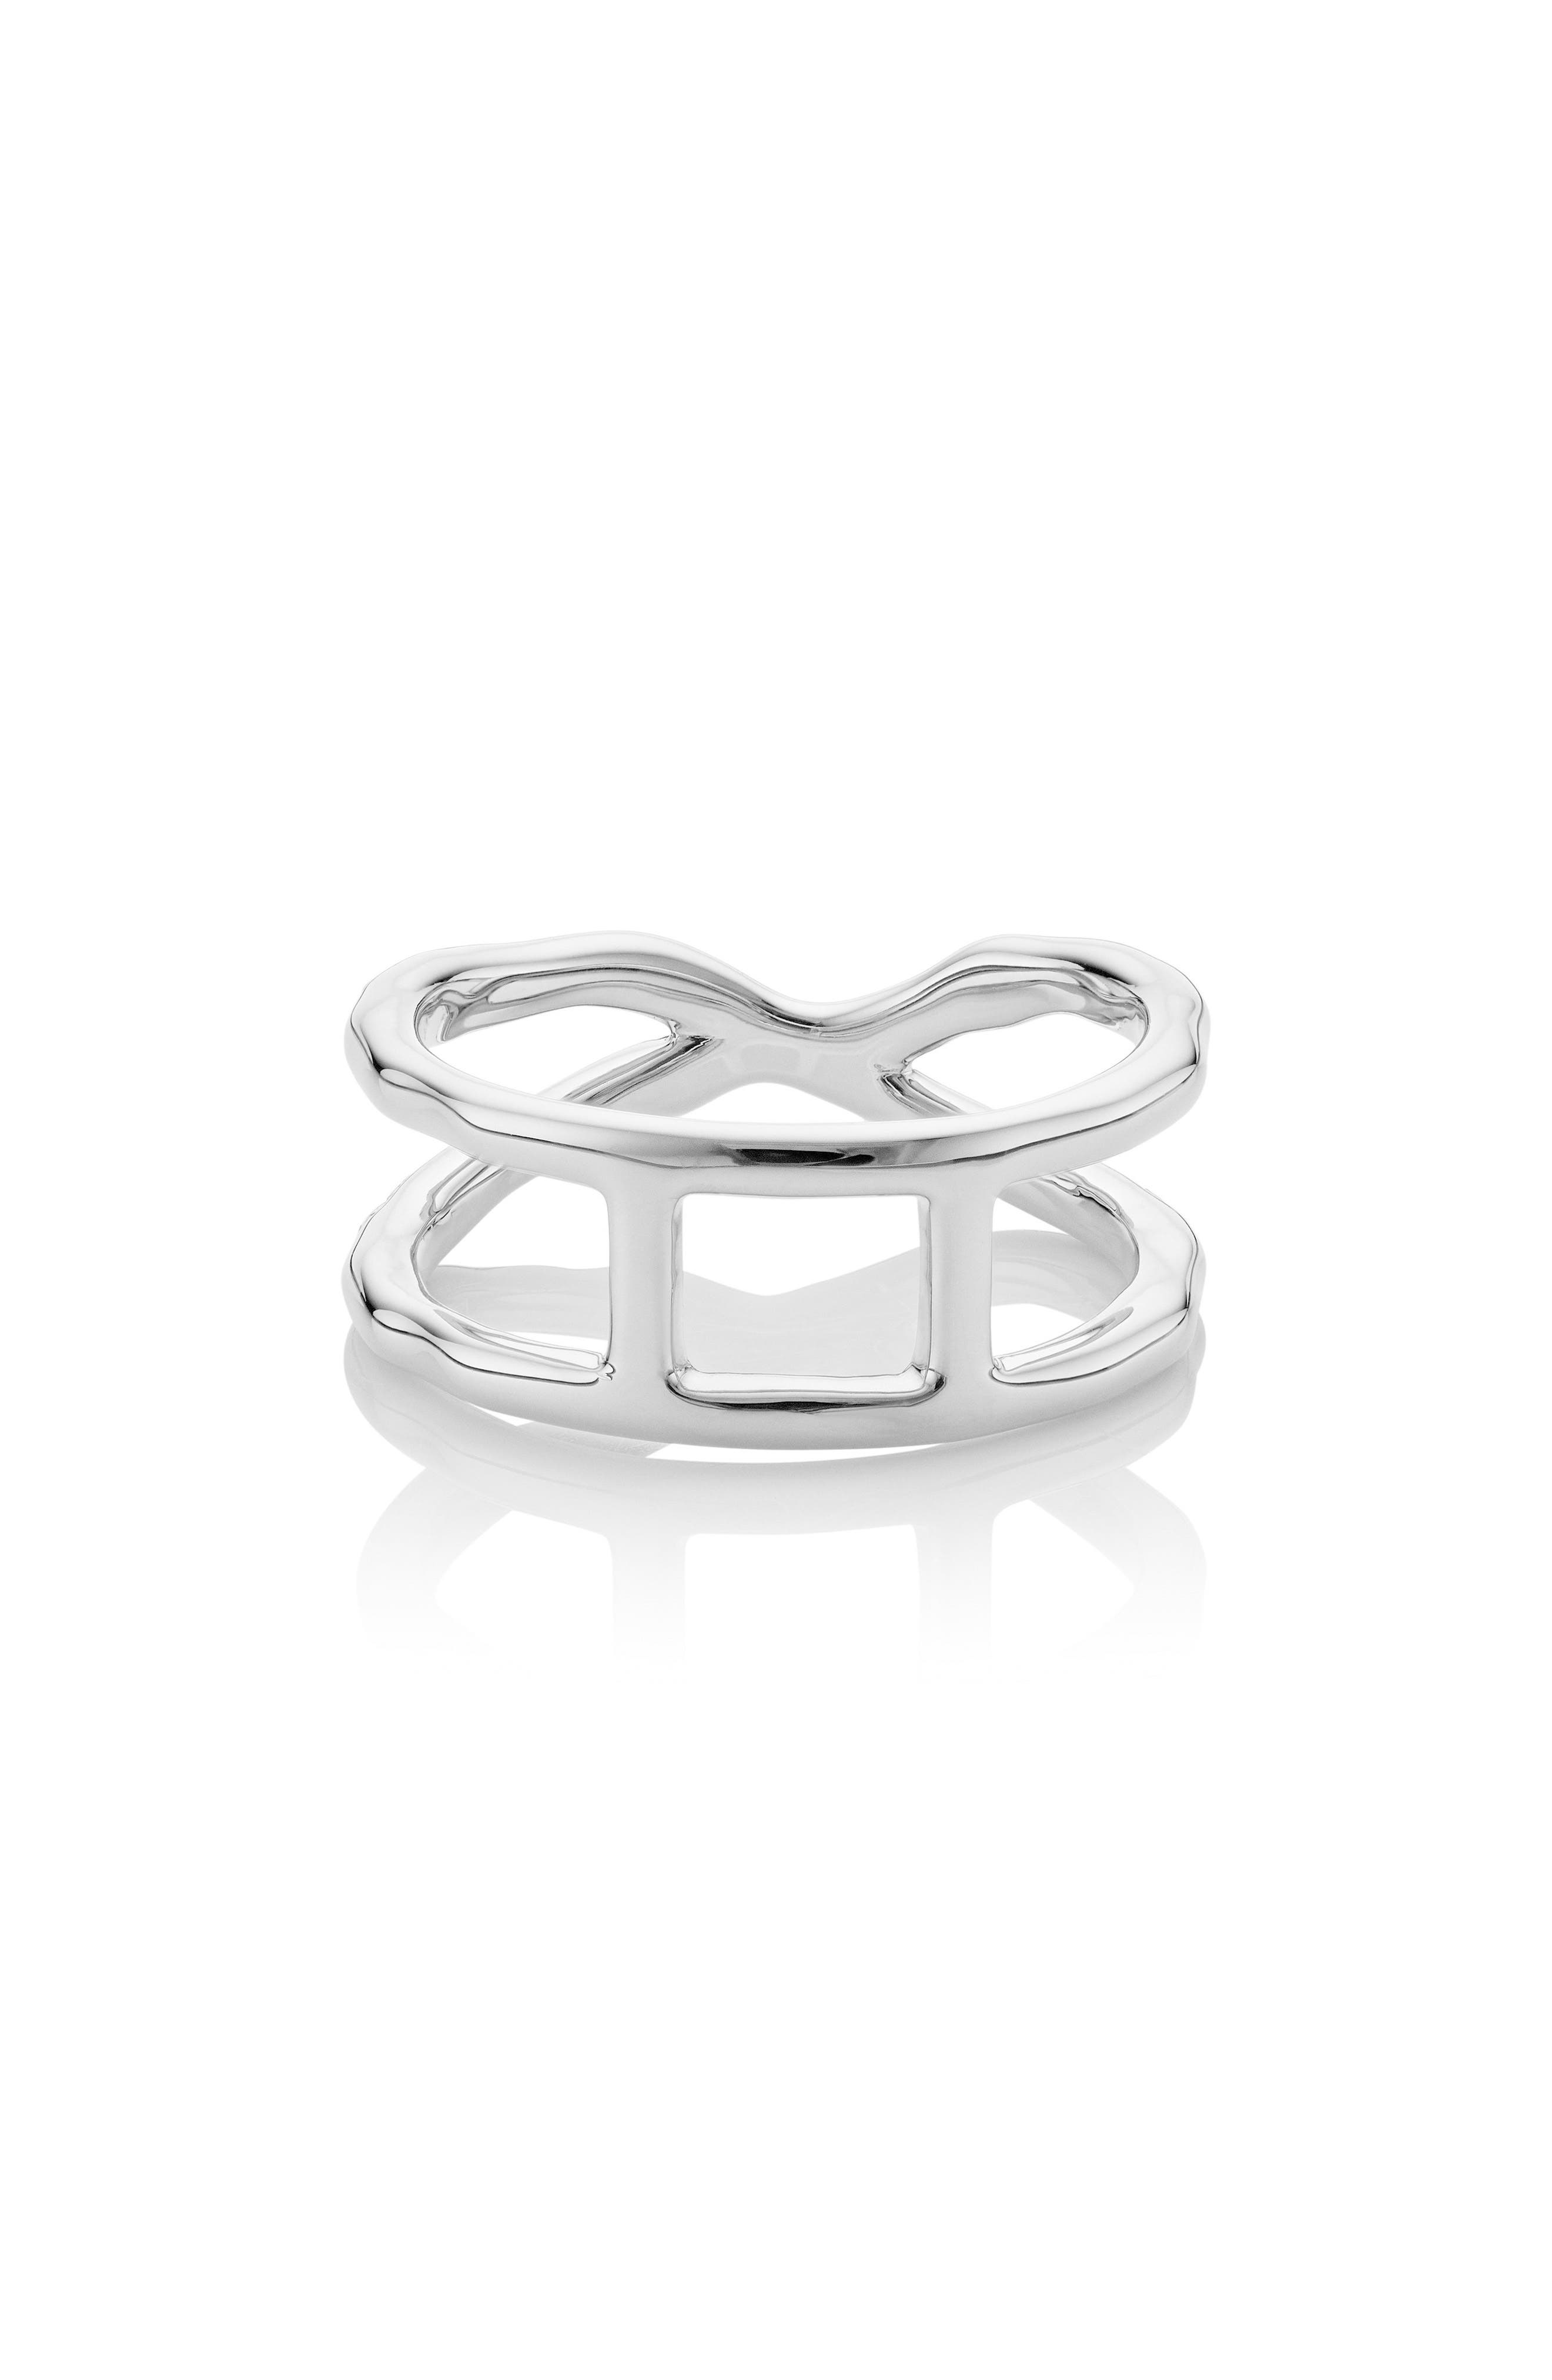 Riva Diamond Ring,                             Alternate thumbnail 2, color,                             SILVER/ DIAMOND